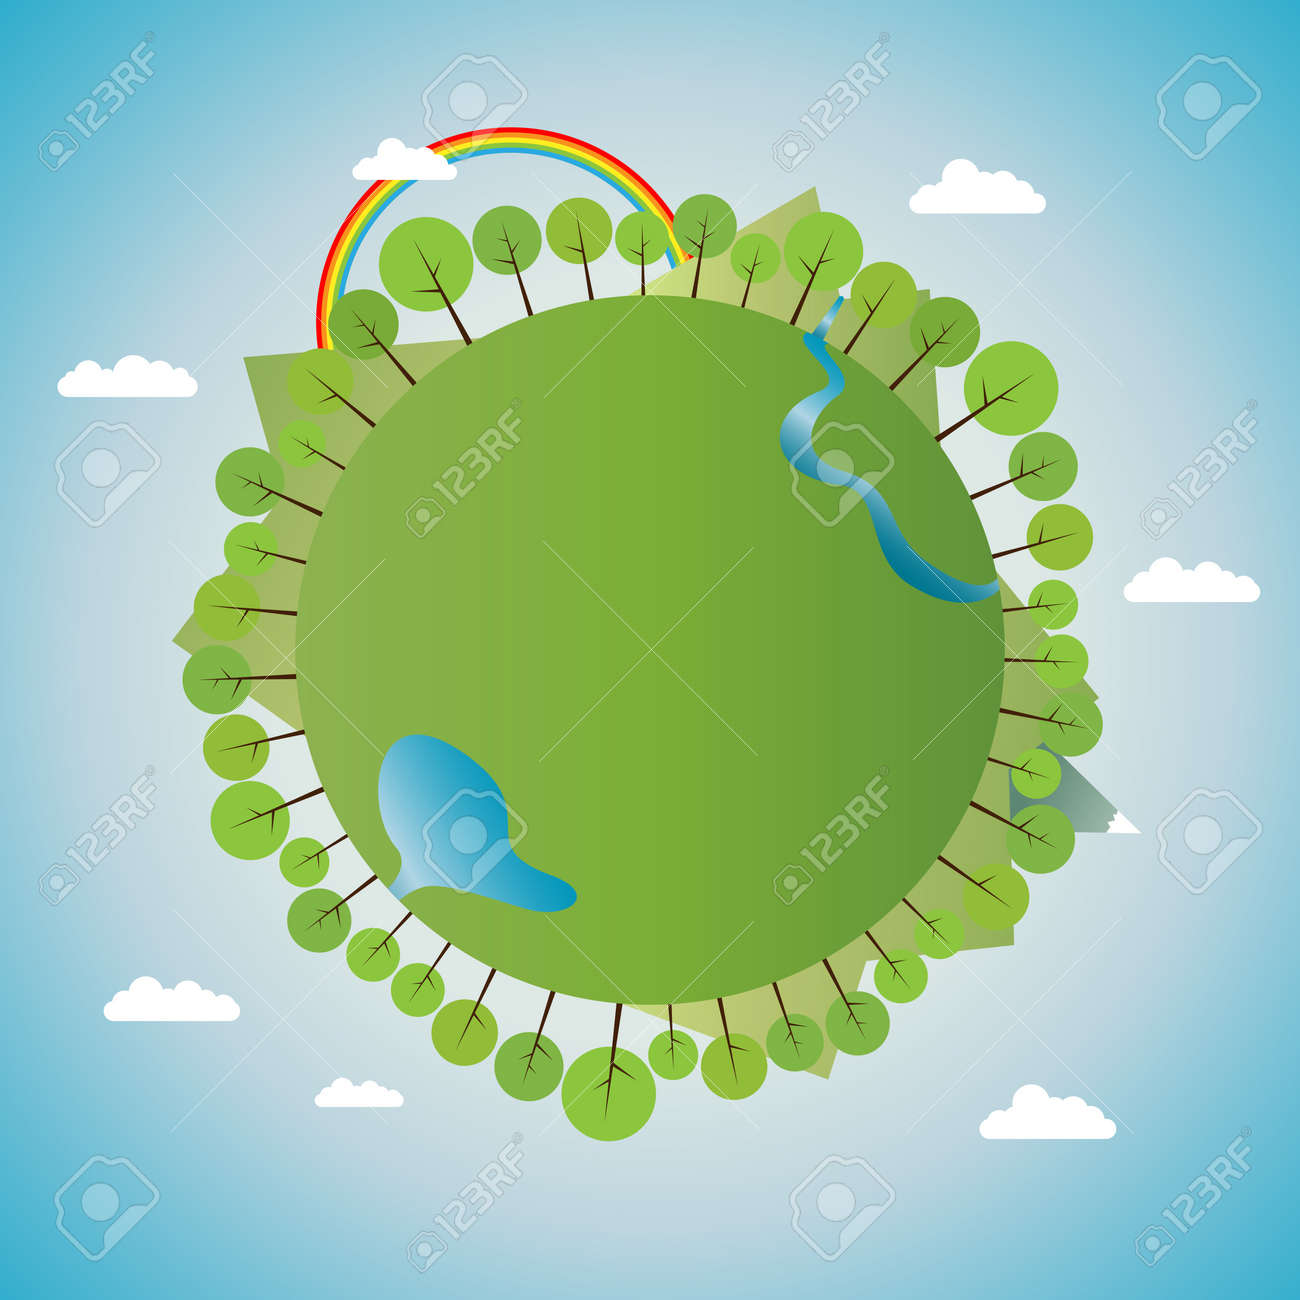 Illustration of green earth full of natural scenery of trees, water bodies and hills and mountains. Stock Vector - 14964786